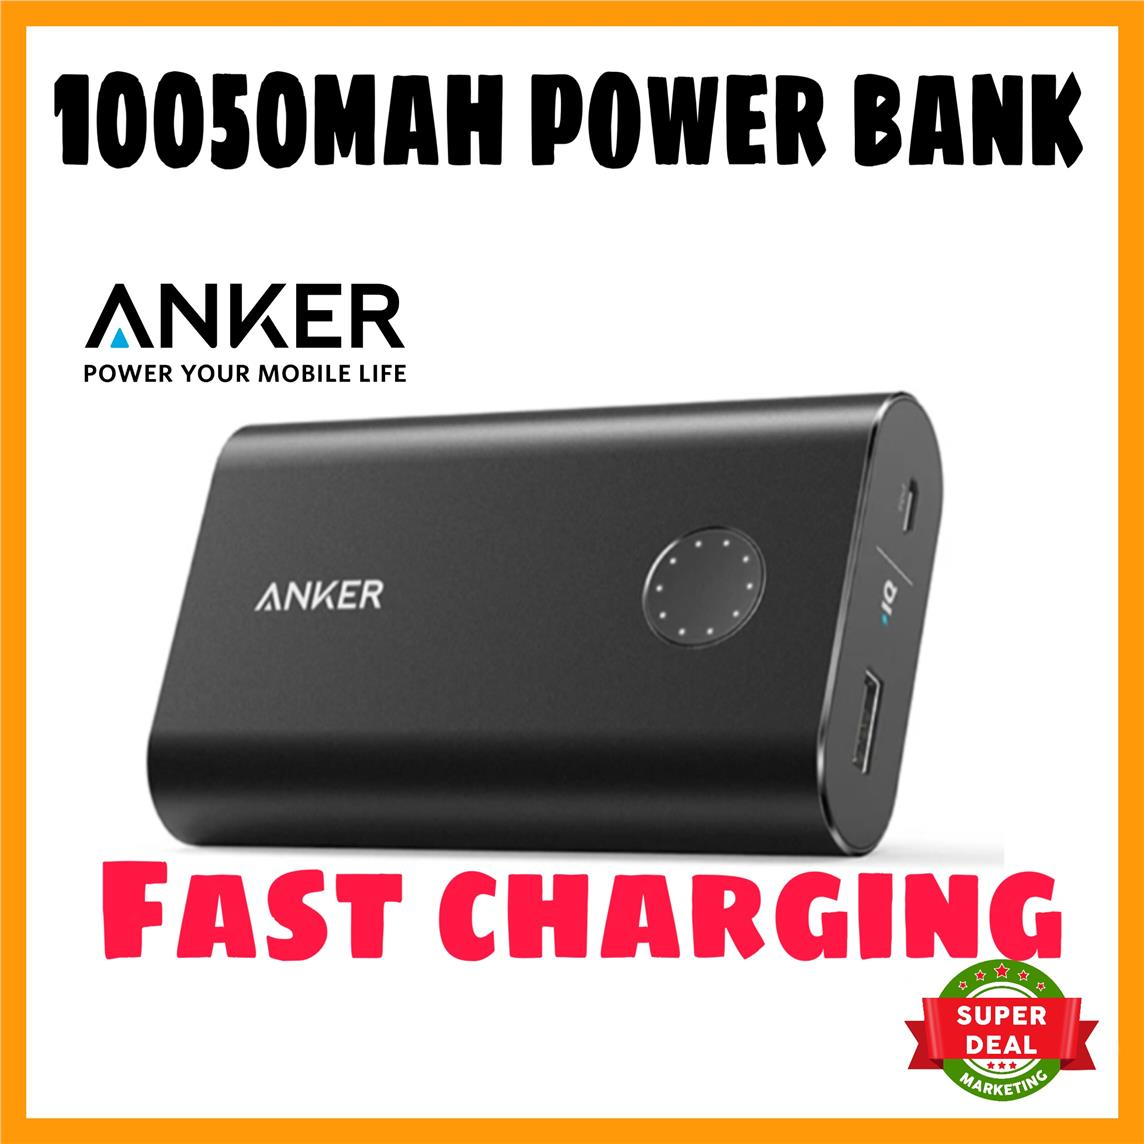 Anker Powercore Plus 10050mah Certified Qualcomm Quick Charge 2 0 Zola Thunder 2q 30 Usb Charger Outputs Black Offer 20 Power Bank Fast Charging New